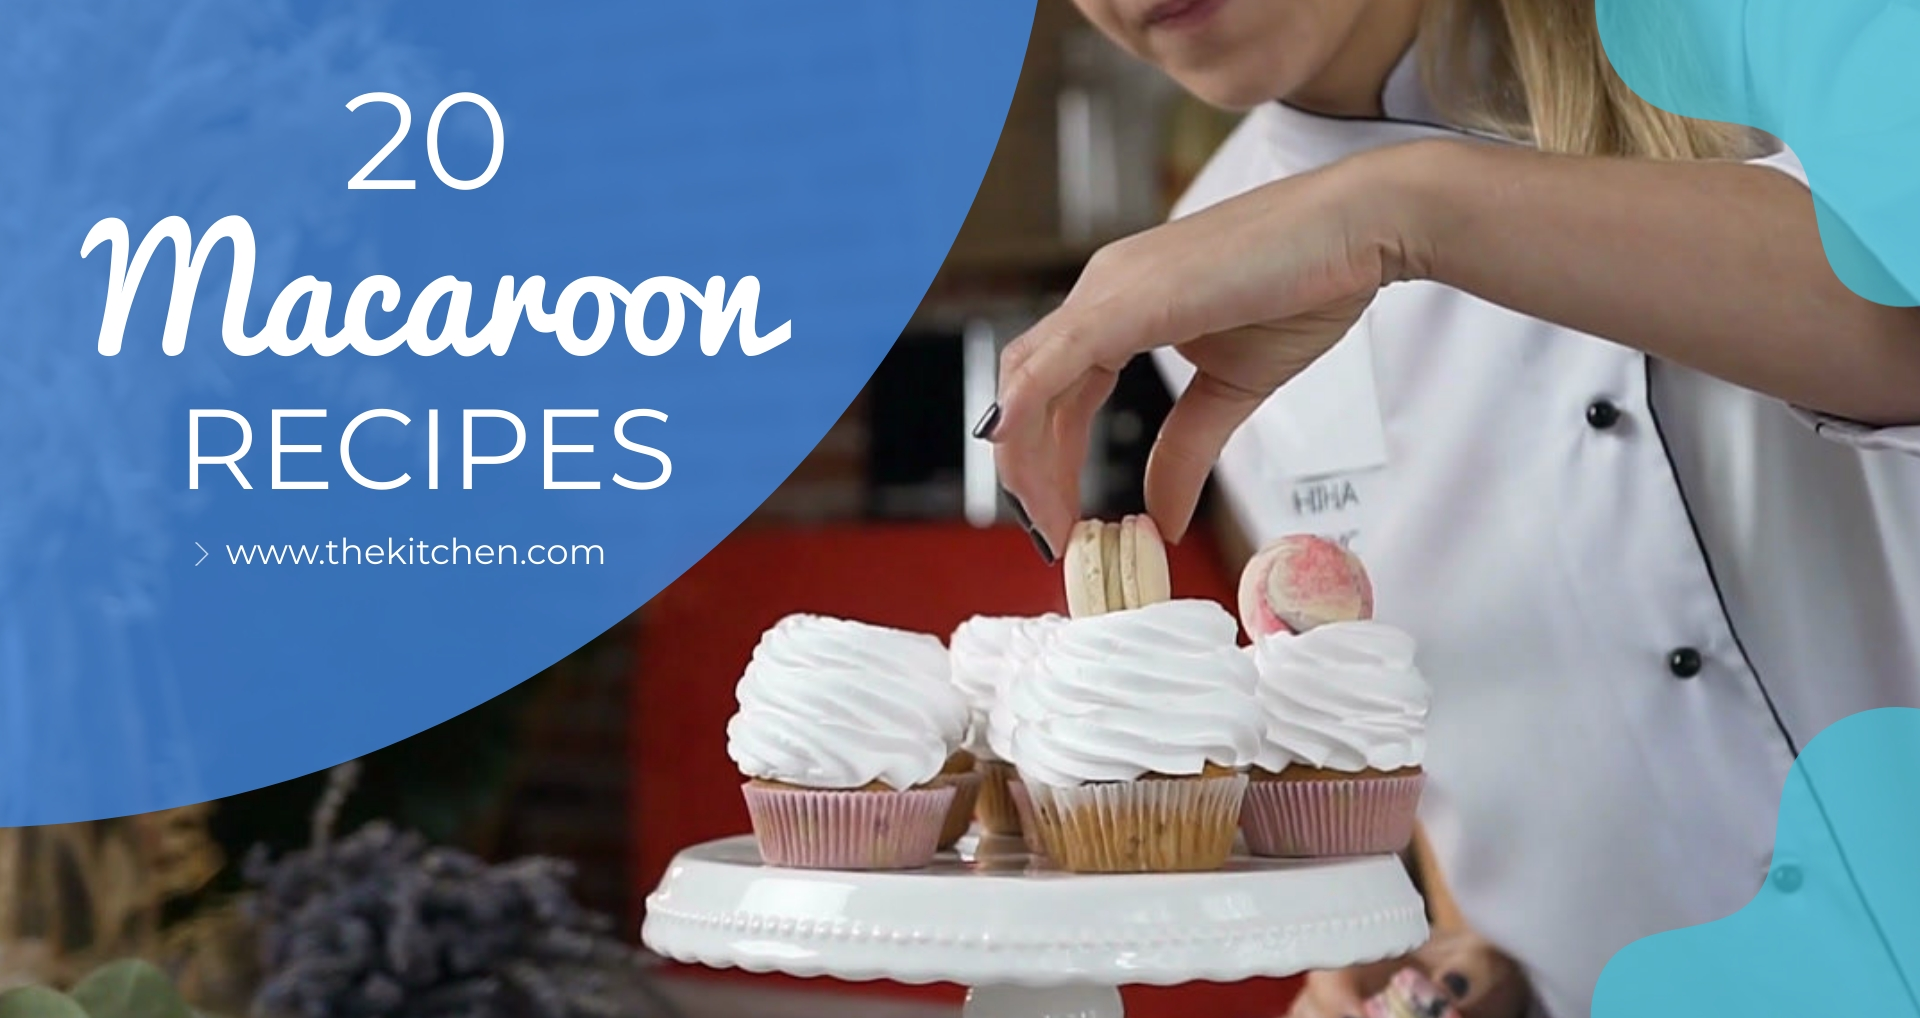 20 Macaroon Recipes Intro - Video Template